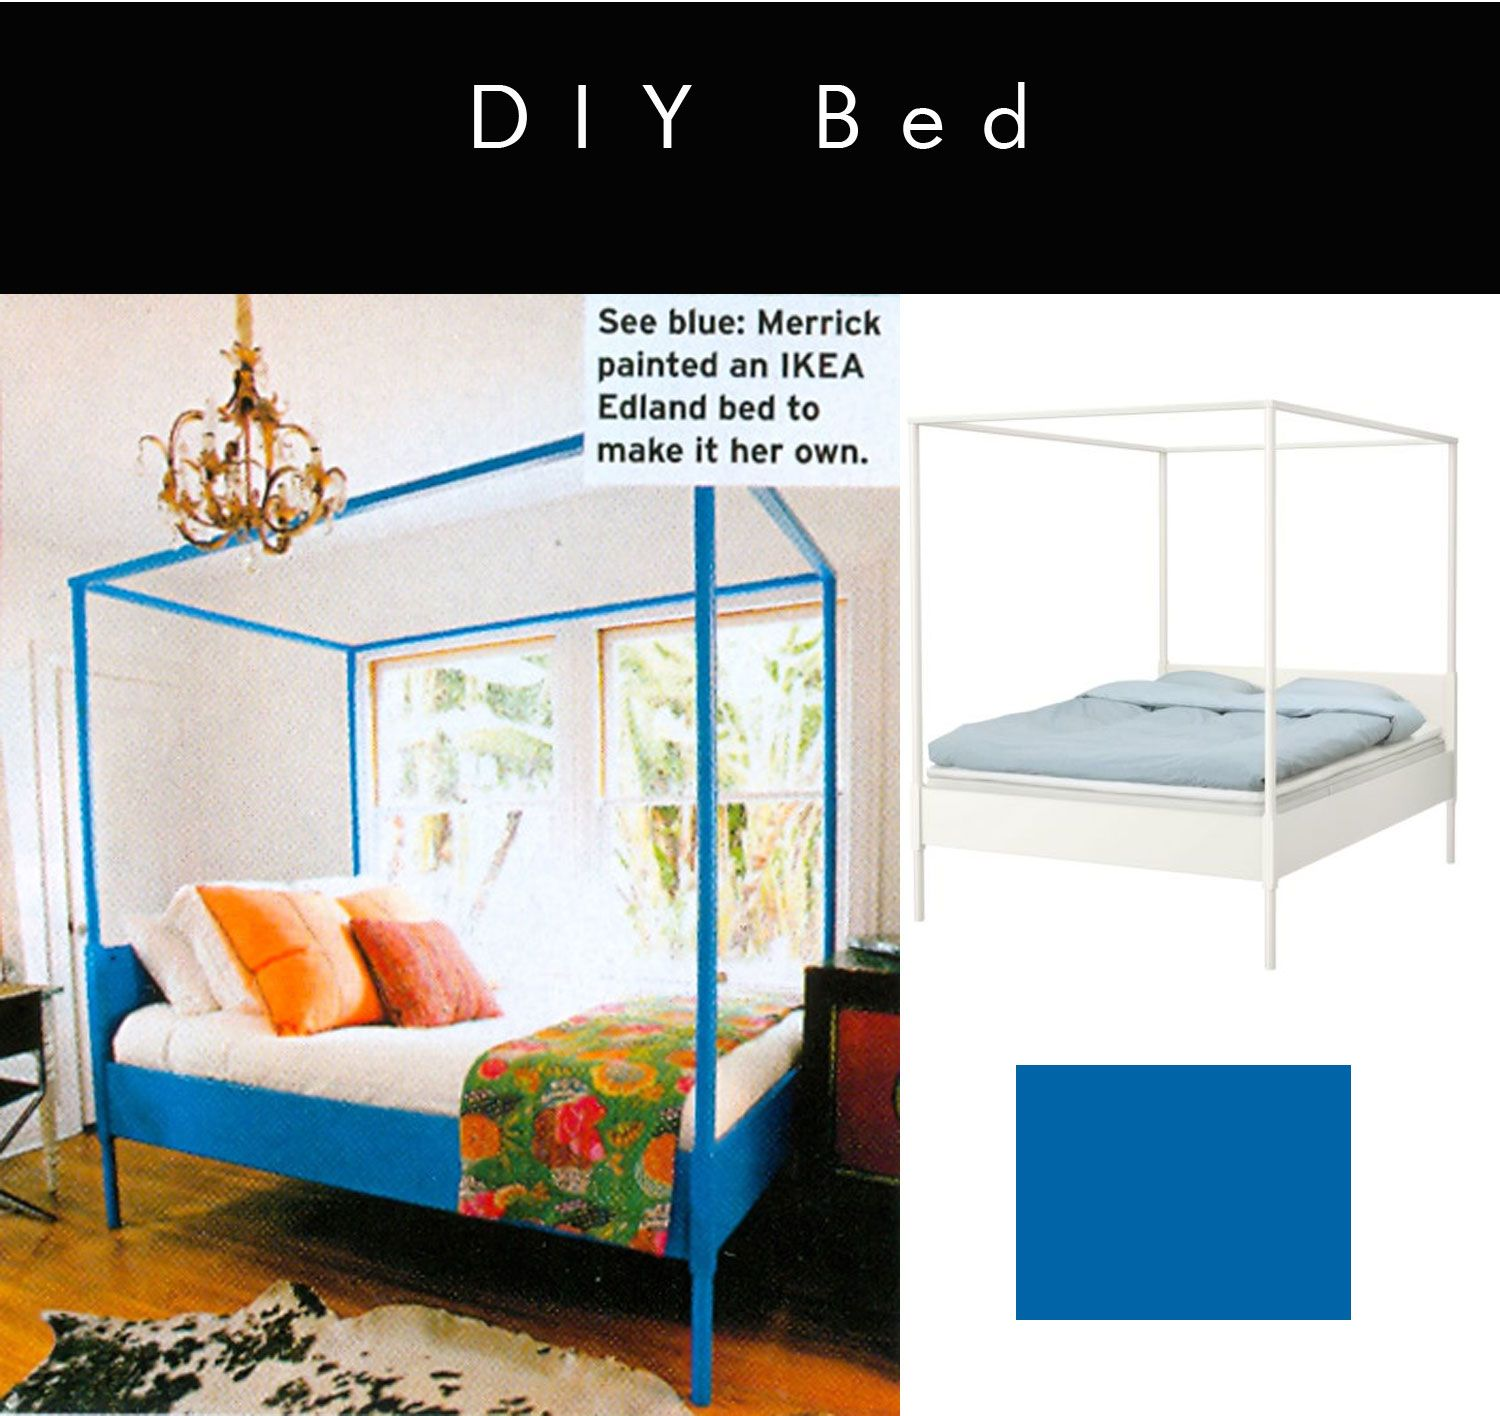 Ikea Hack Painted Canopy Bed In Heidi Merrick S Room Via Elle Decor Bedroom Inspirations Bedroom Diy Bedroom Styles